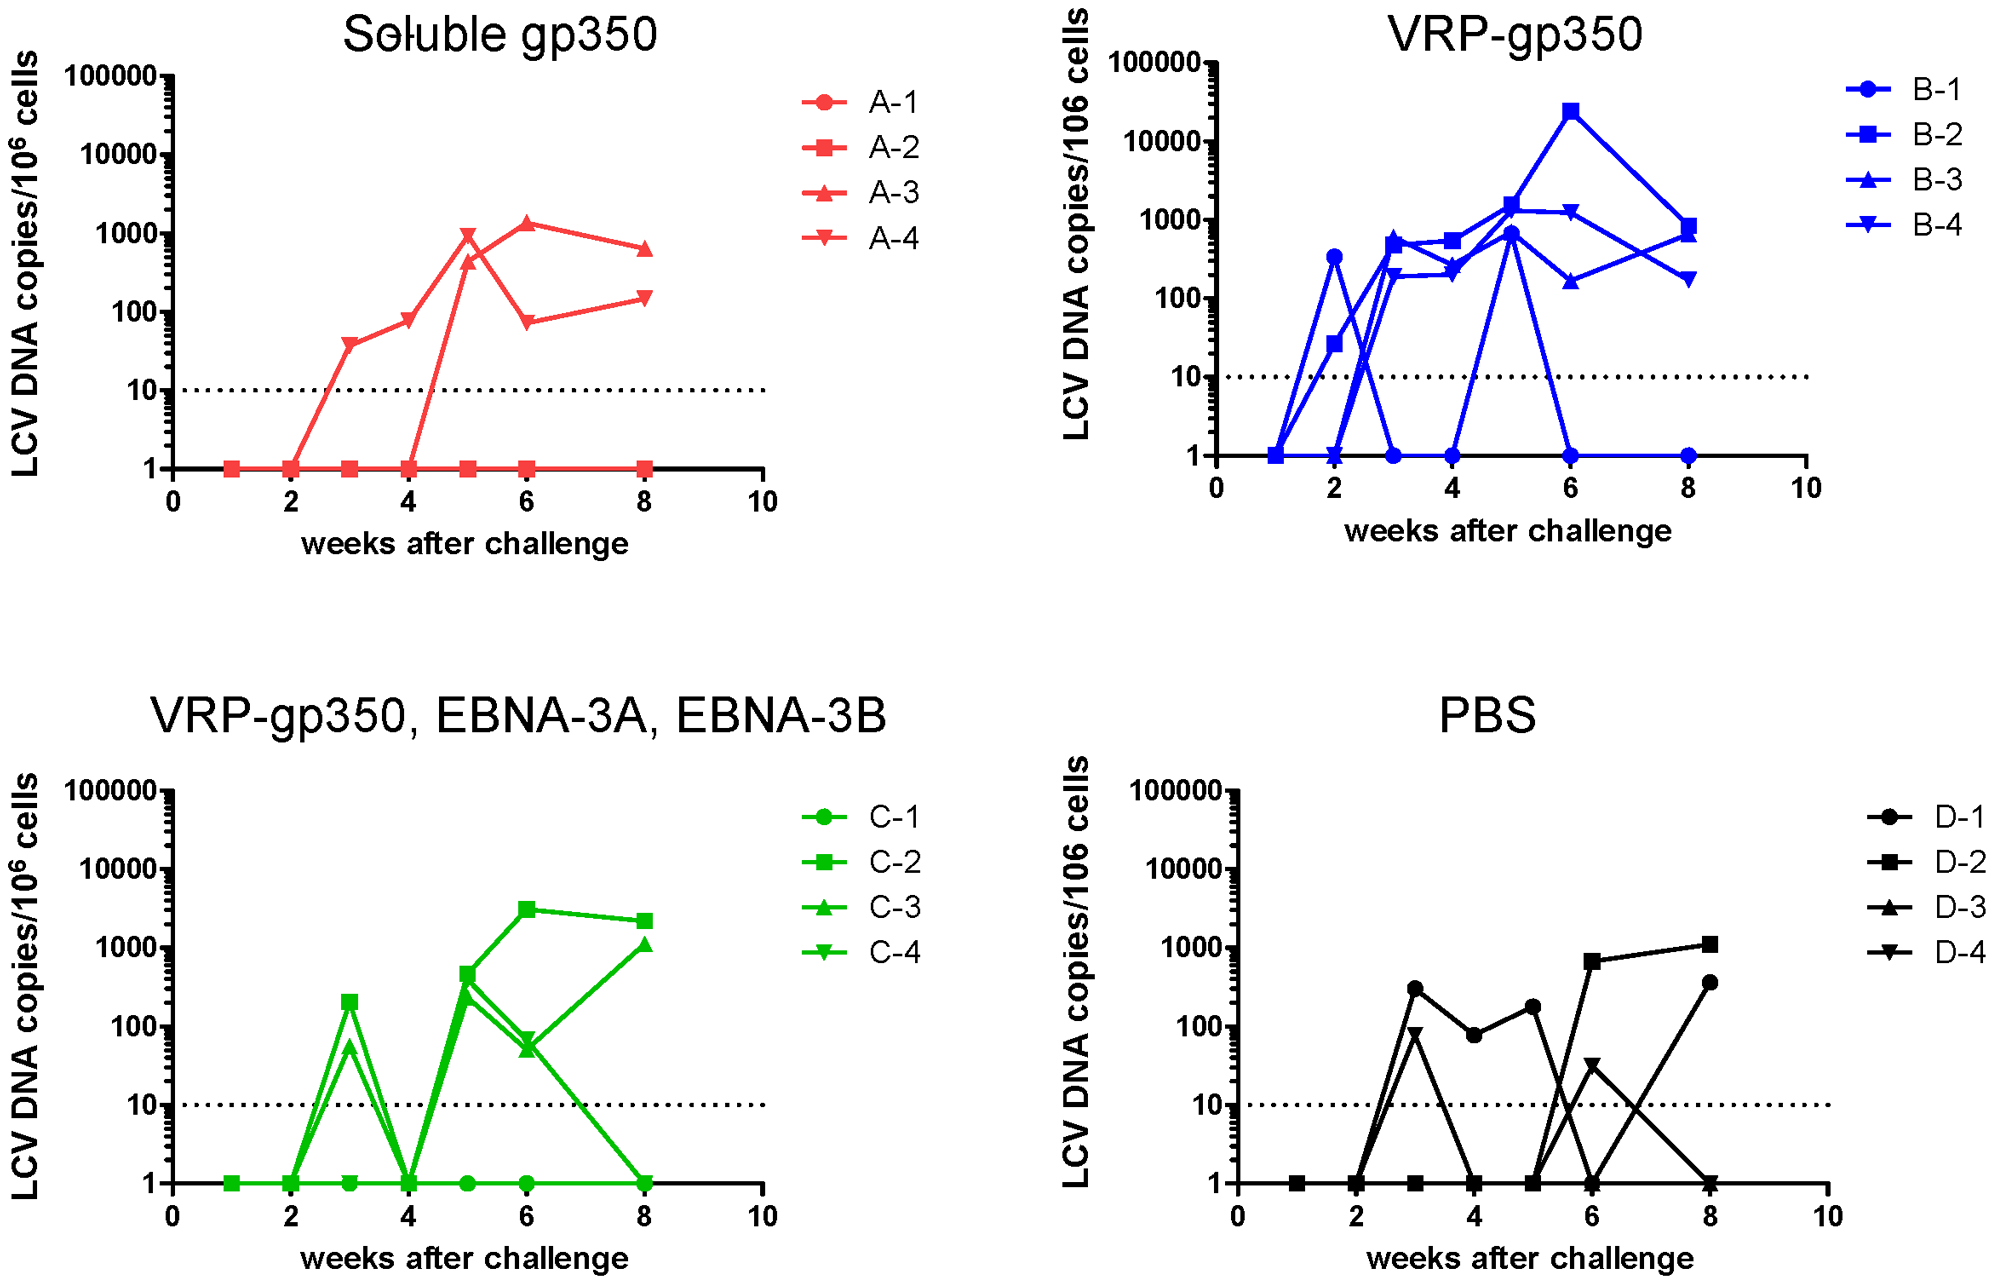 Detection of rhesus LCV DNA in the blood of monkeys immunized with soluble gp350, VRP-gp350, a combination of VRP-350, VRP-EBNA-3A, and VRP-EBNA-3B, or PBS.